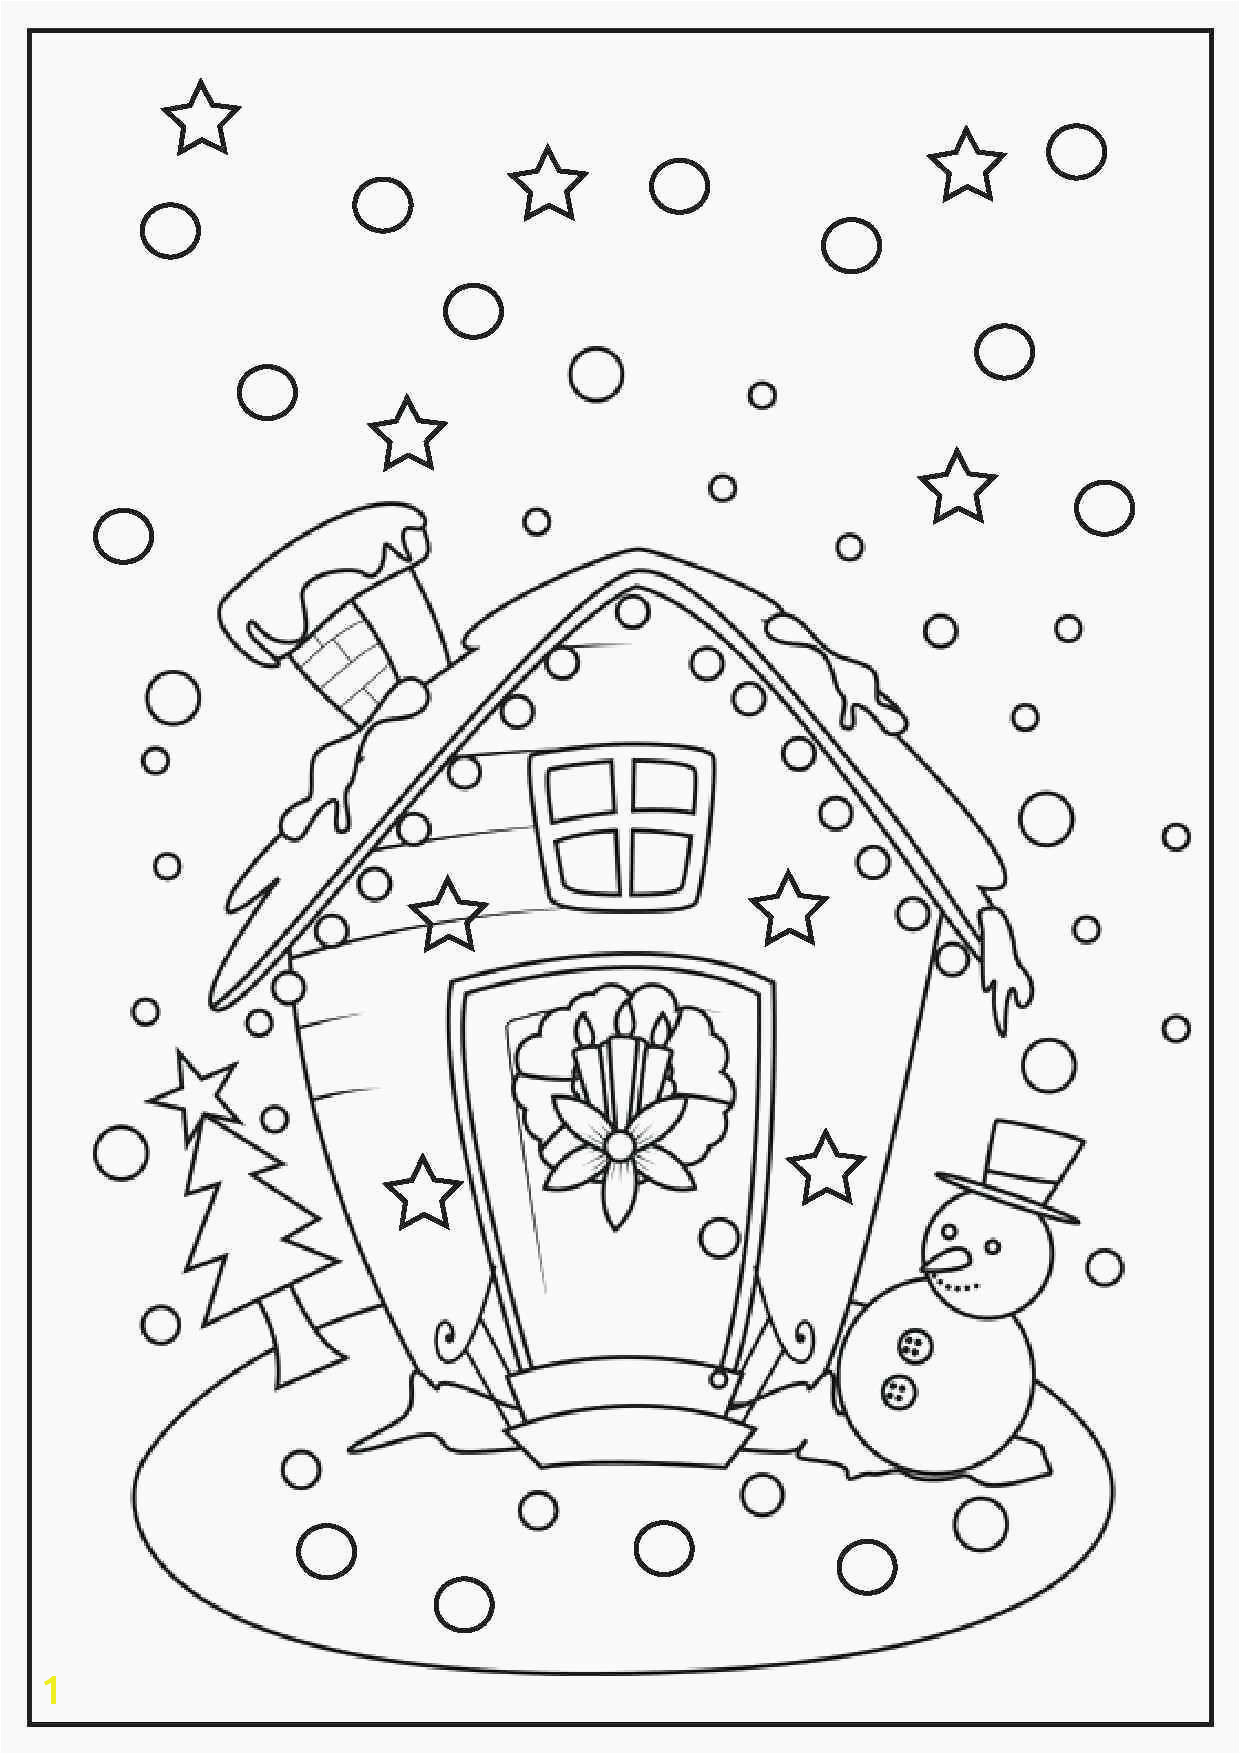 Gingerbread Coloring Pages Luxury Gingerbread House Coloring Pages Free Christmas Coloring Pages Gingerbread Coloring Pages